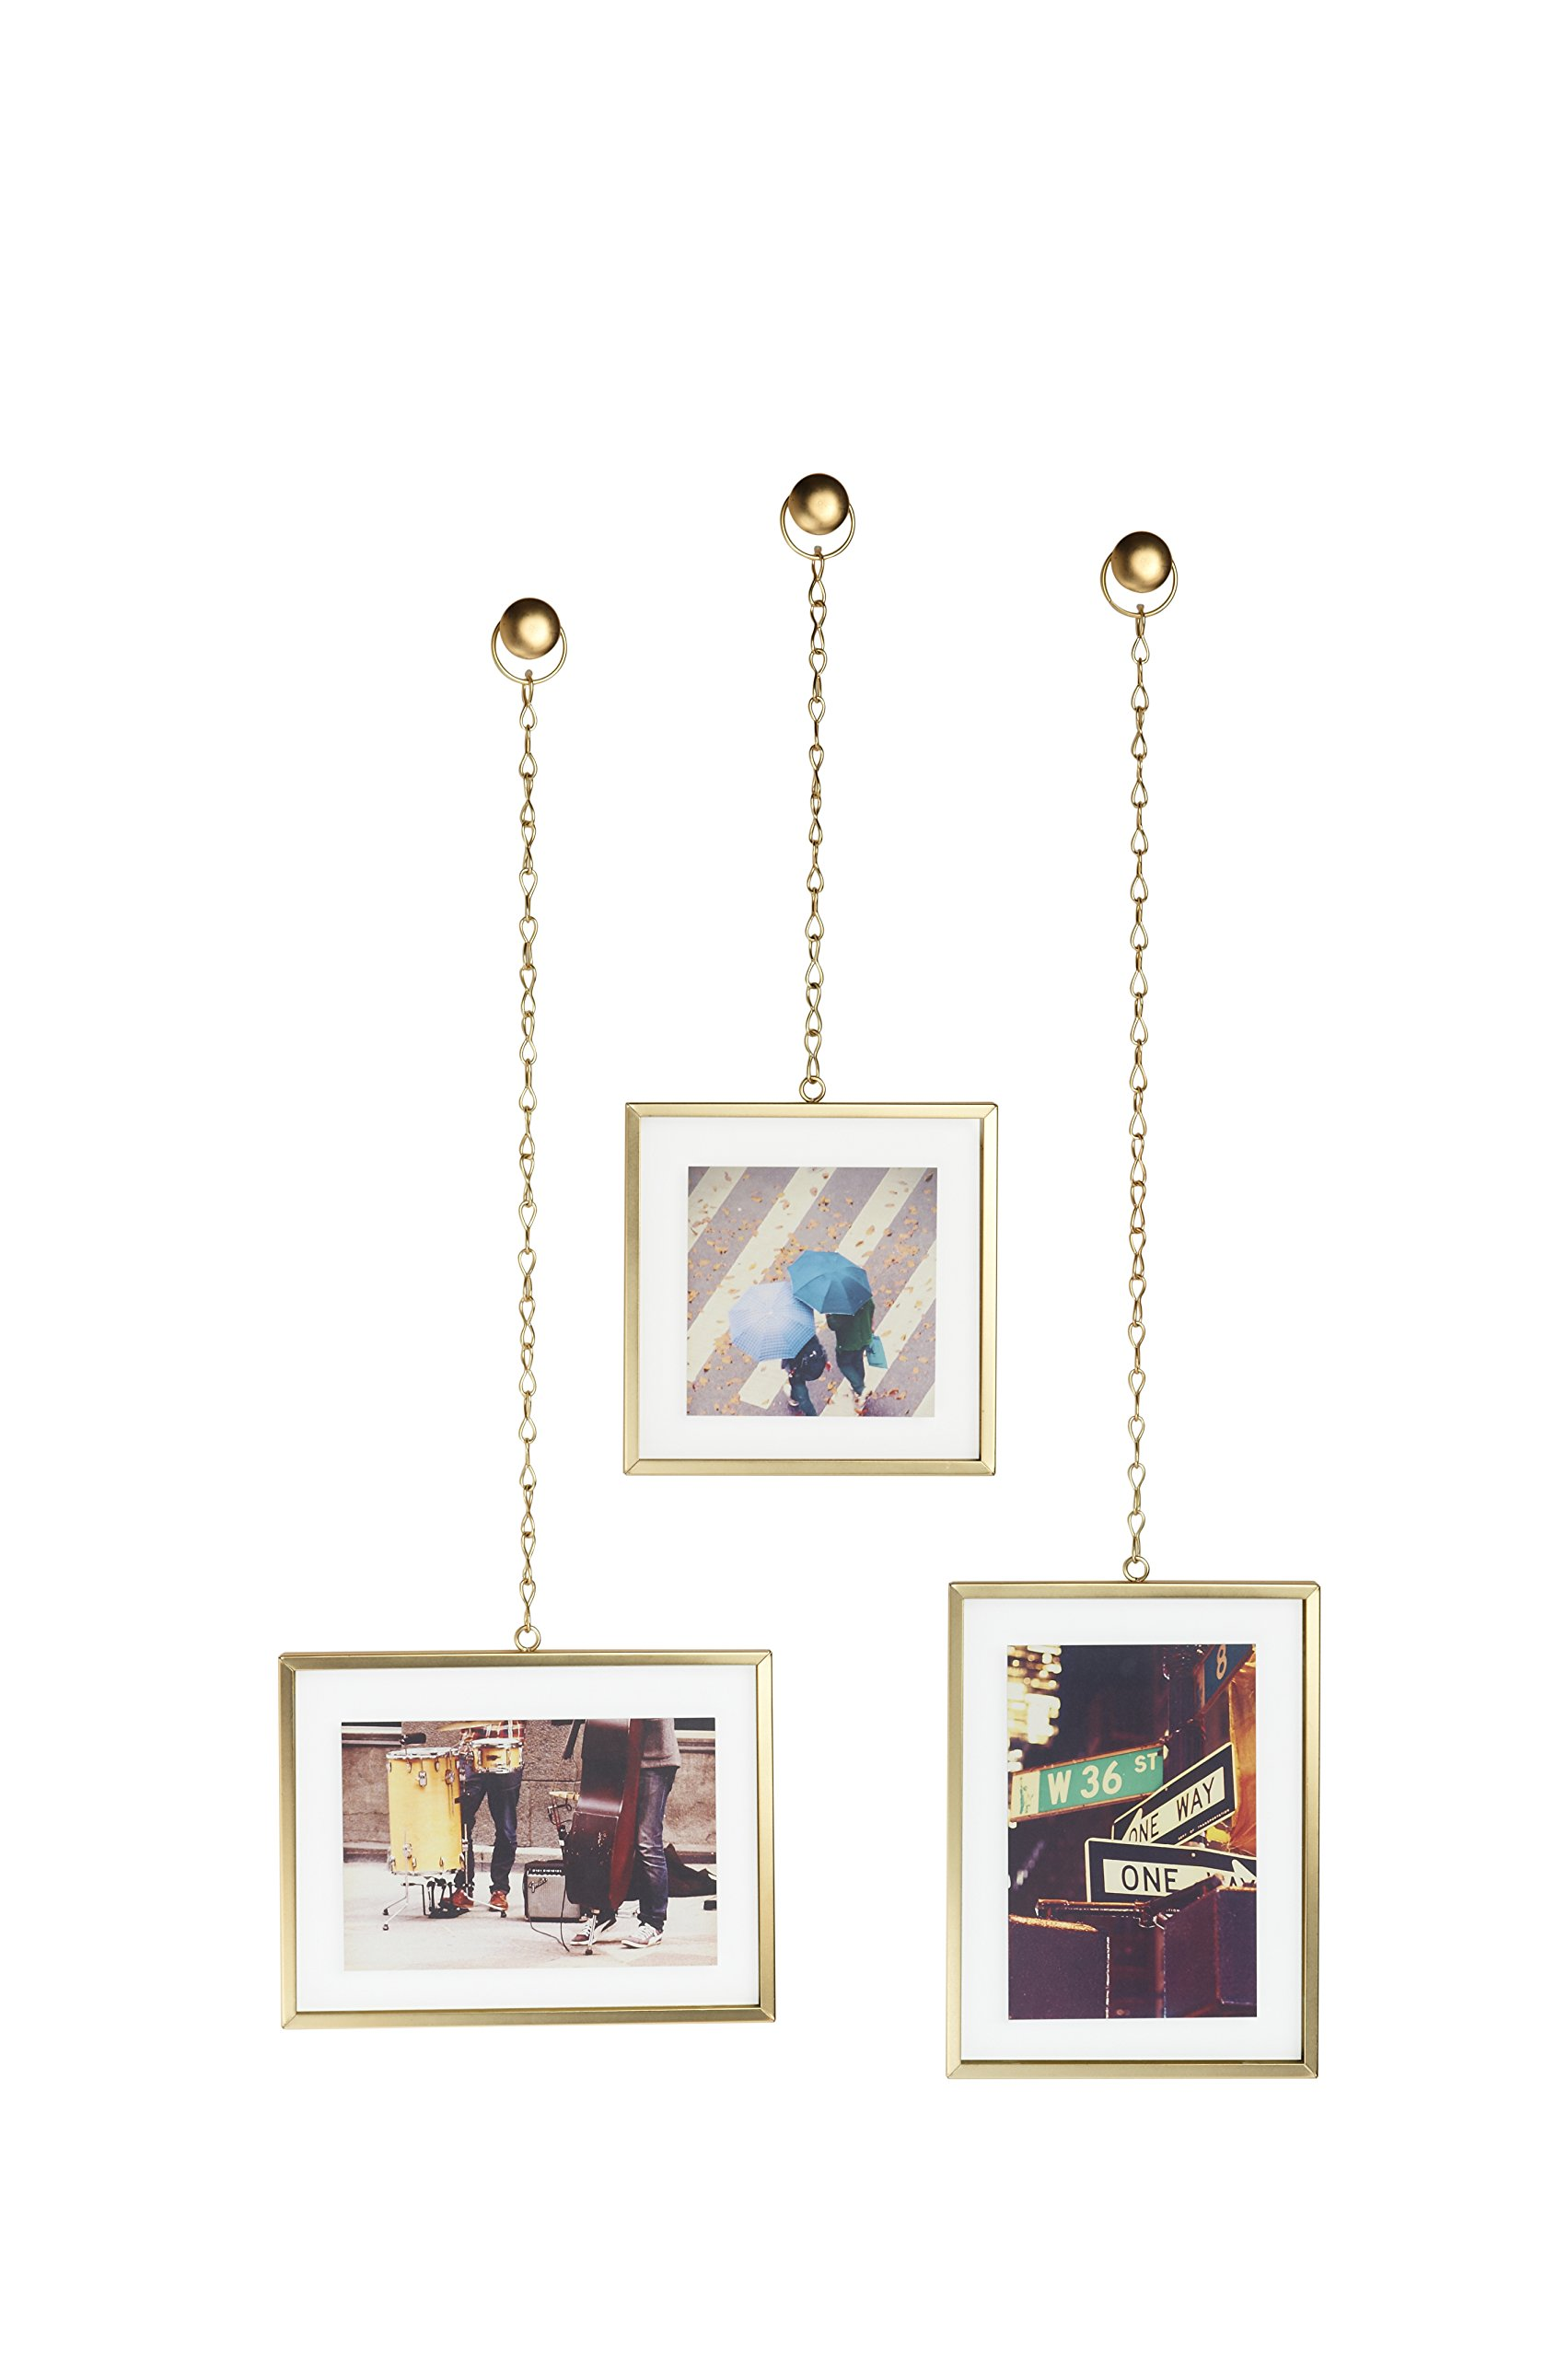 Umbra Fotochain, Multi Picture Frames for the Wall, Brass by Umbra